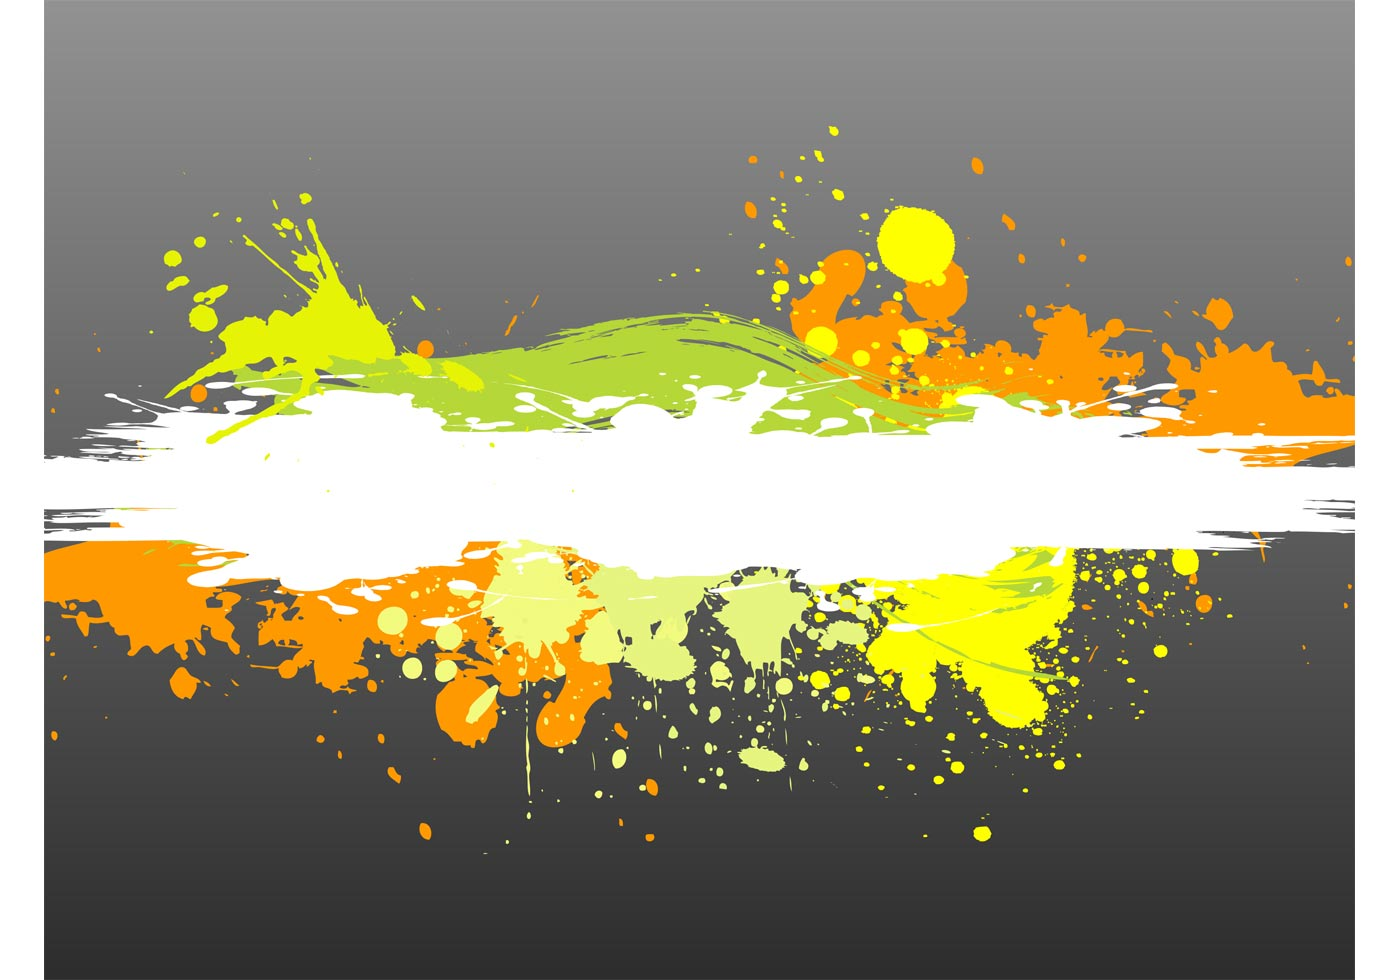 Colorful Paint Splatter - Download Free Vector Art, Stock ...